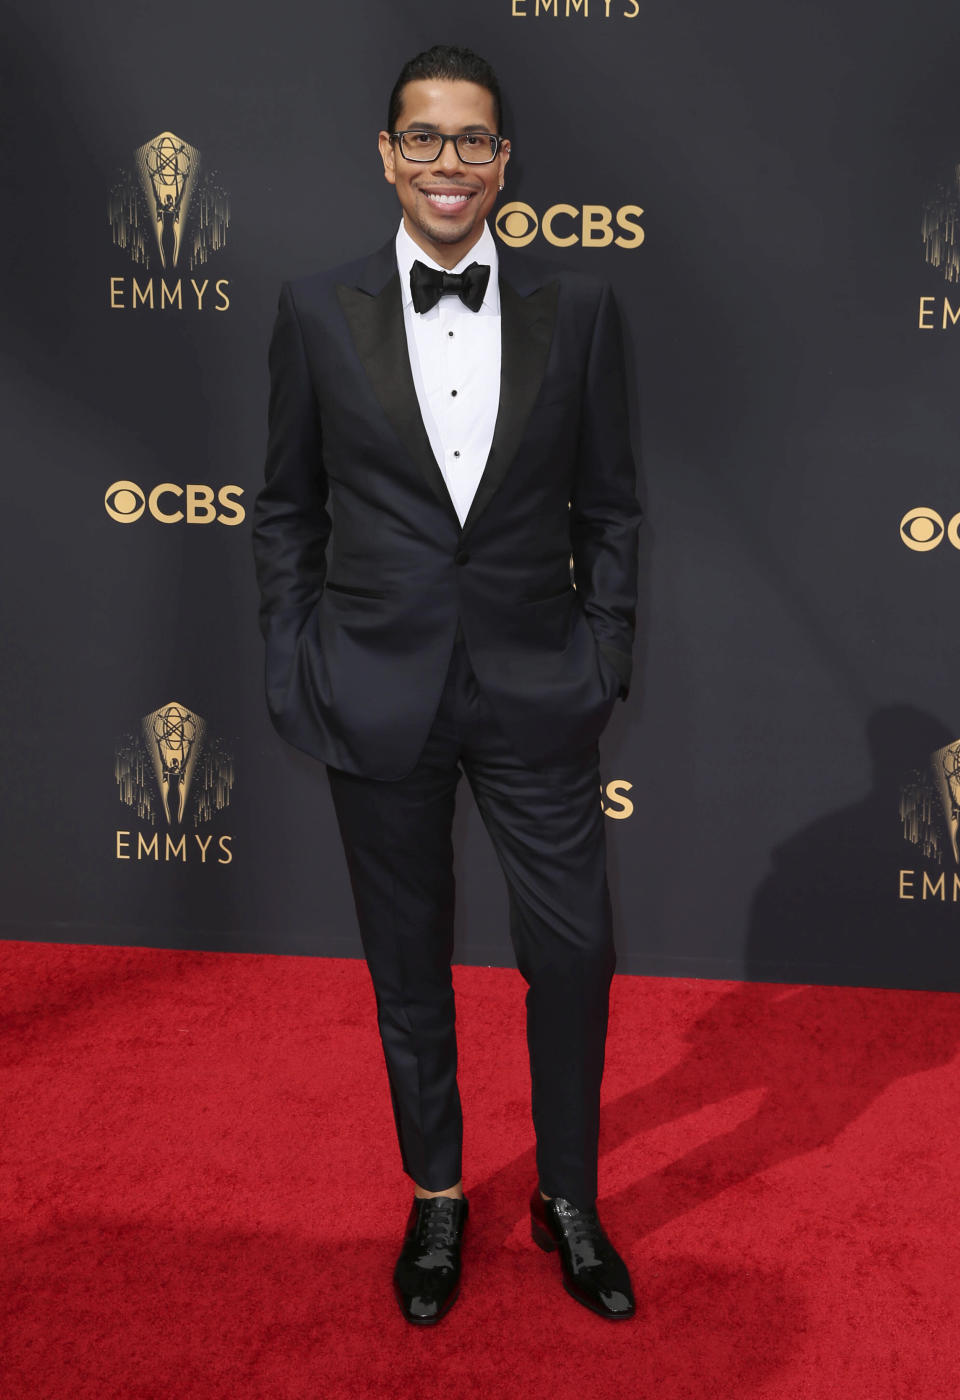 Steven Canals on Sunday - Credit: Danny Moloshok/Invision for the Television Academy/AP Images